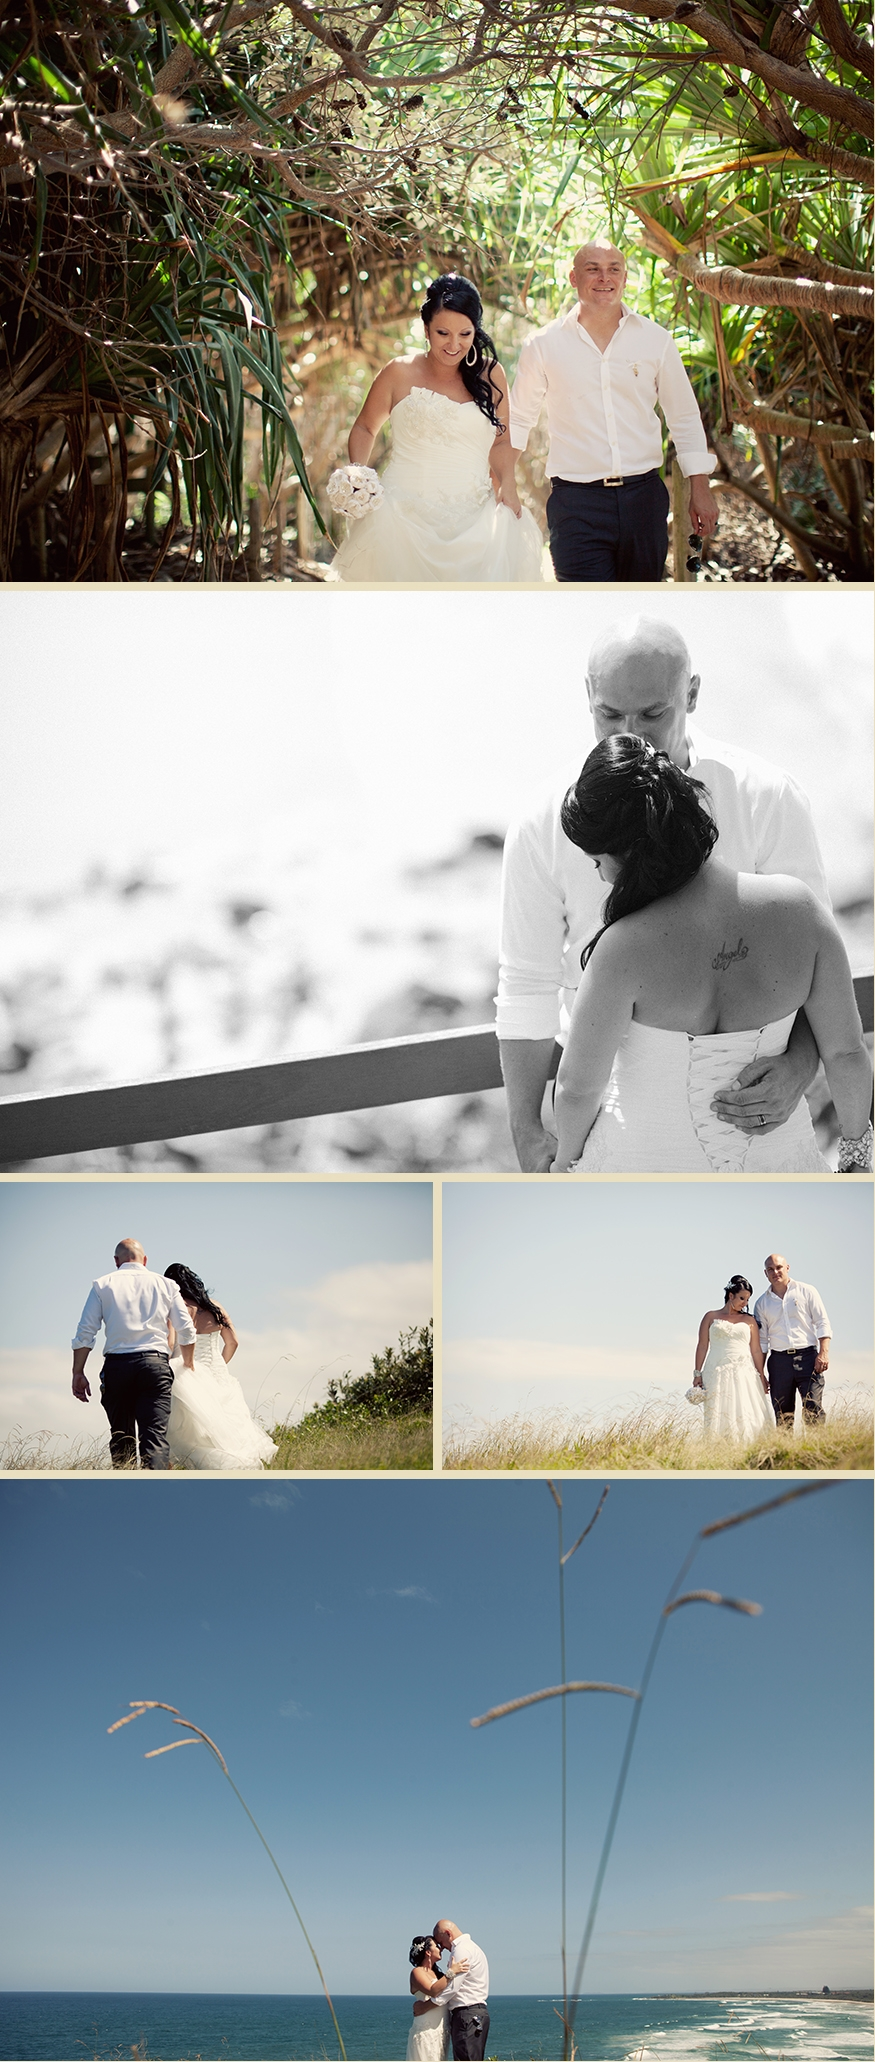 Brisbane Wedding Phoographer Blog collage-1329891411216